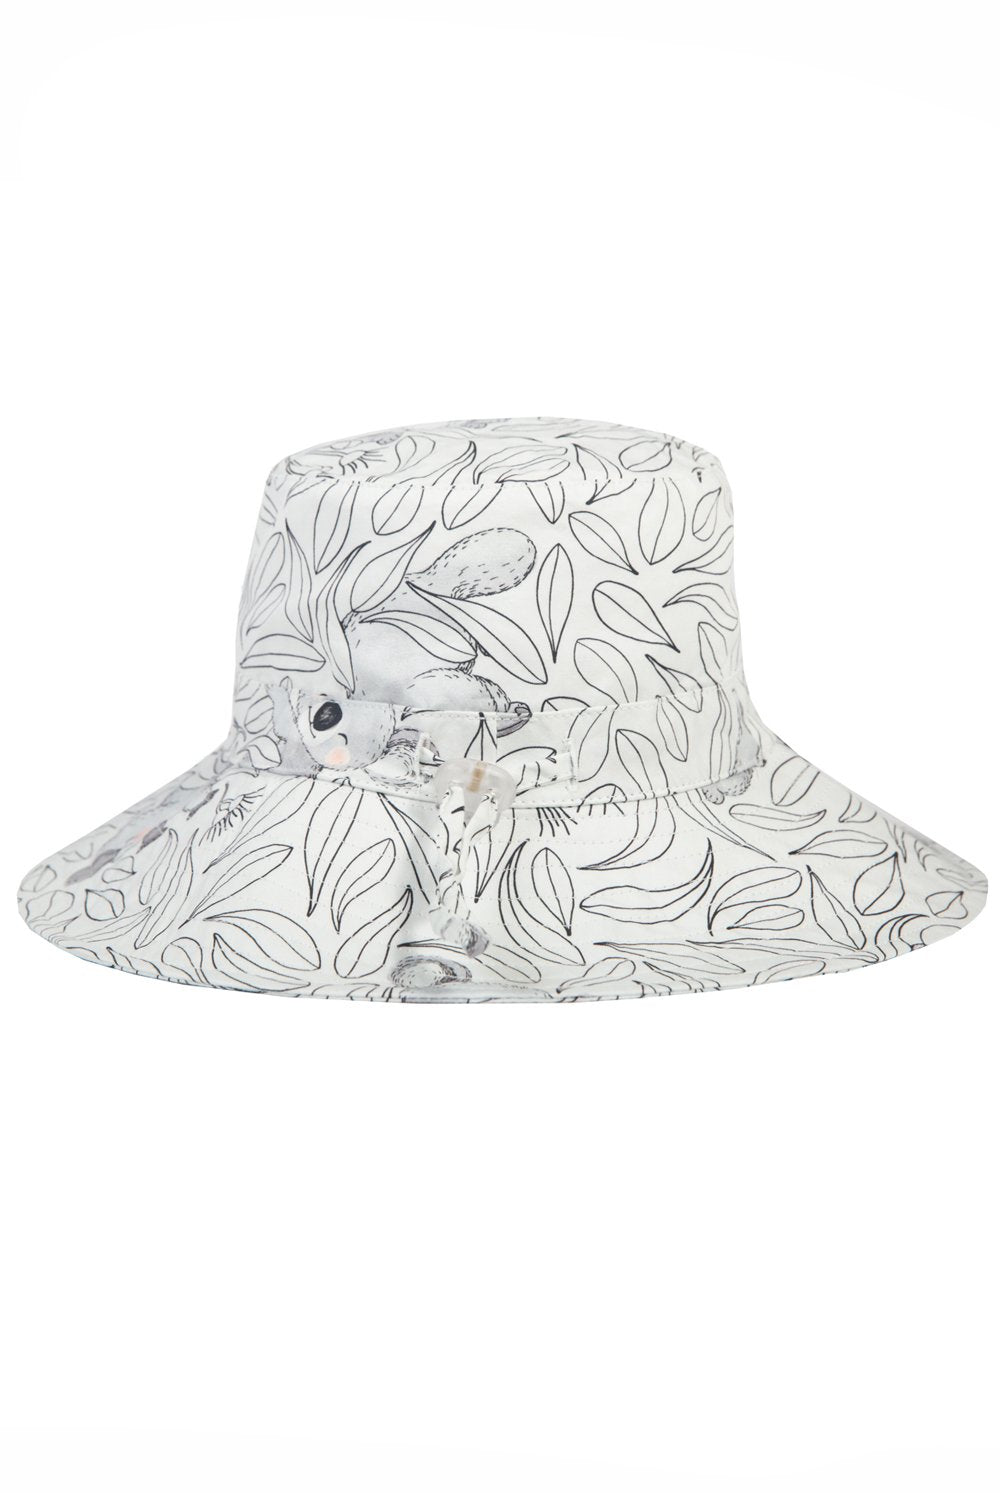 Cuddly Faces Children's Sun Hat